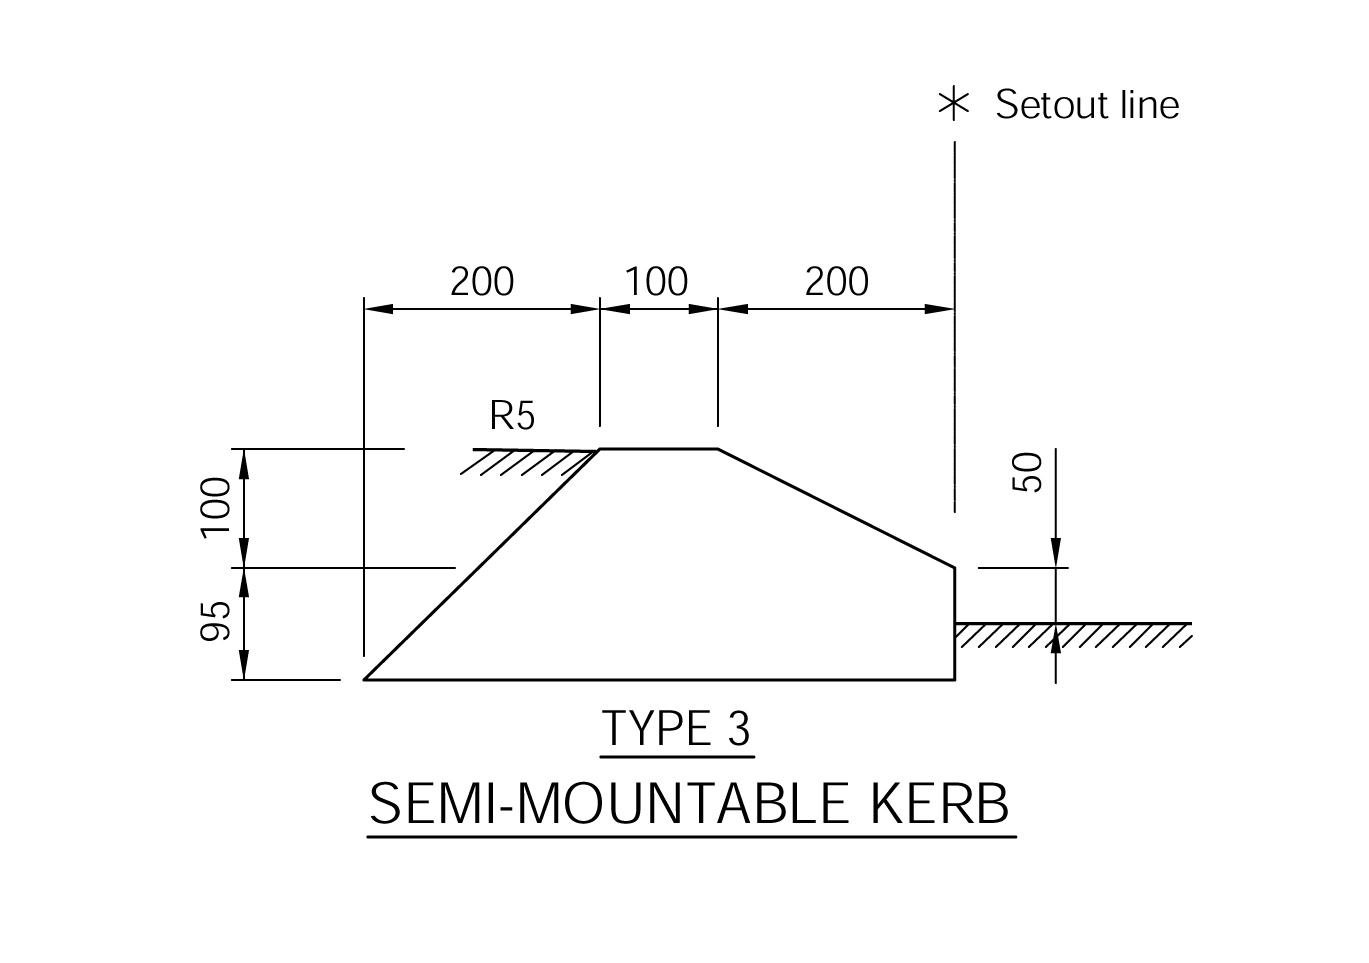 Semi Mountable Kerb - Type 3